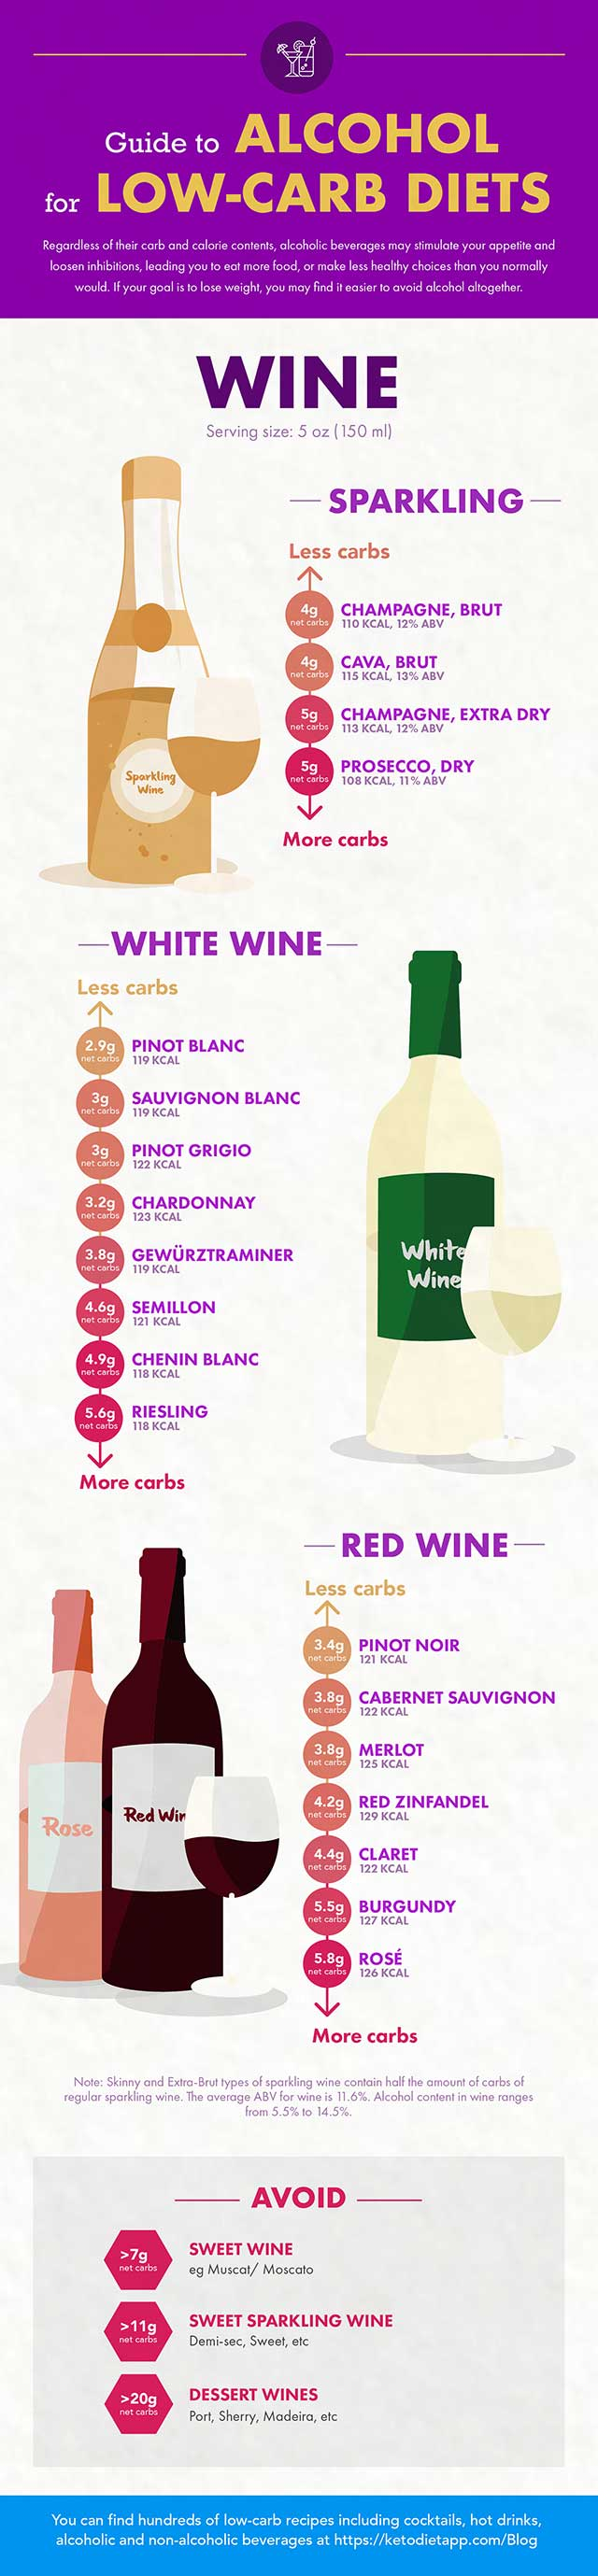 Alcohol Guide - Wine